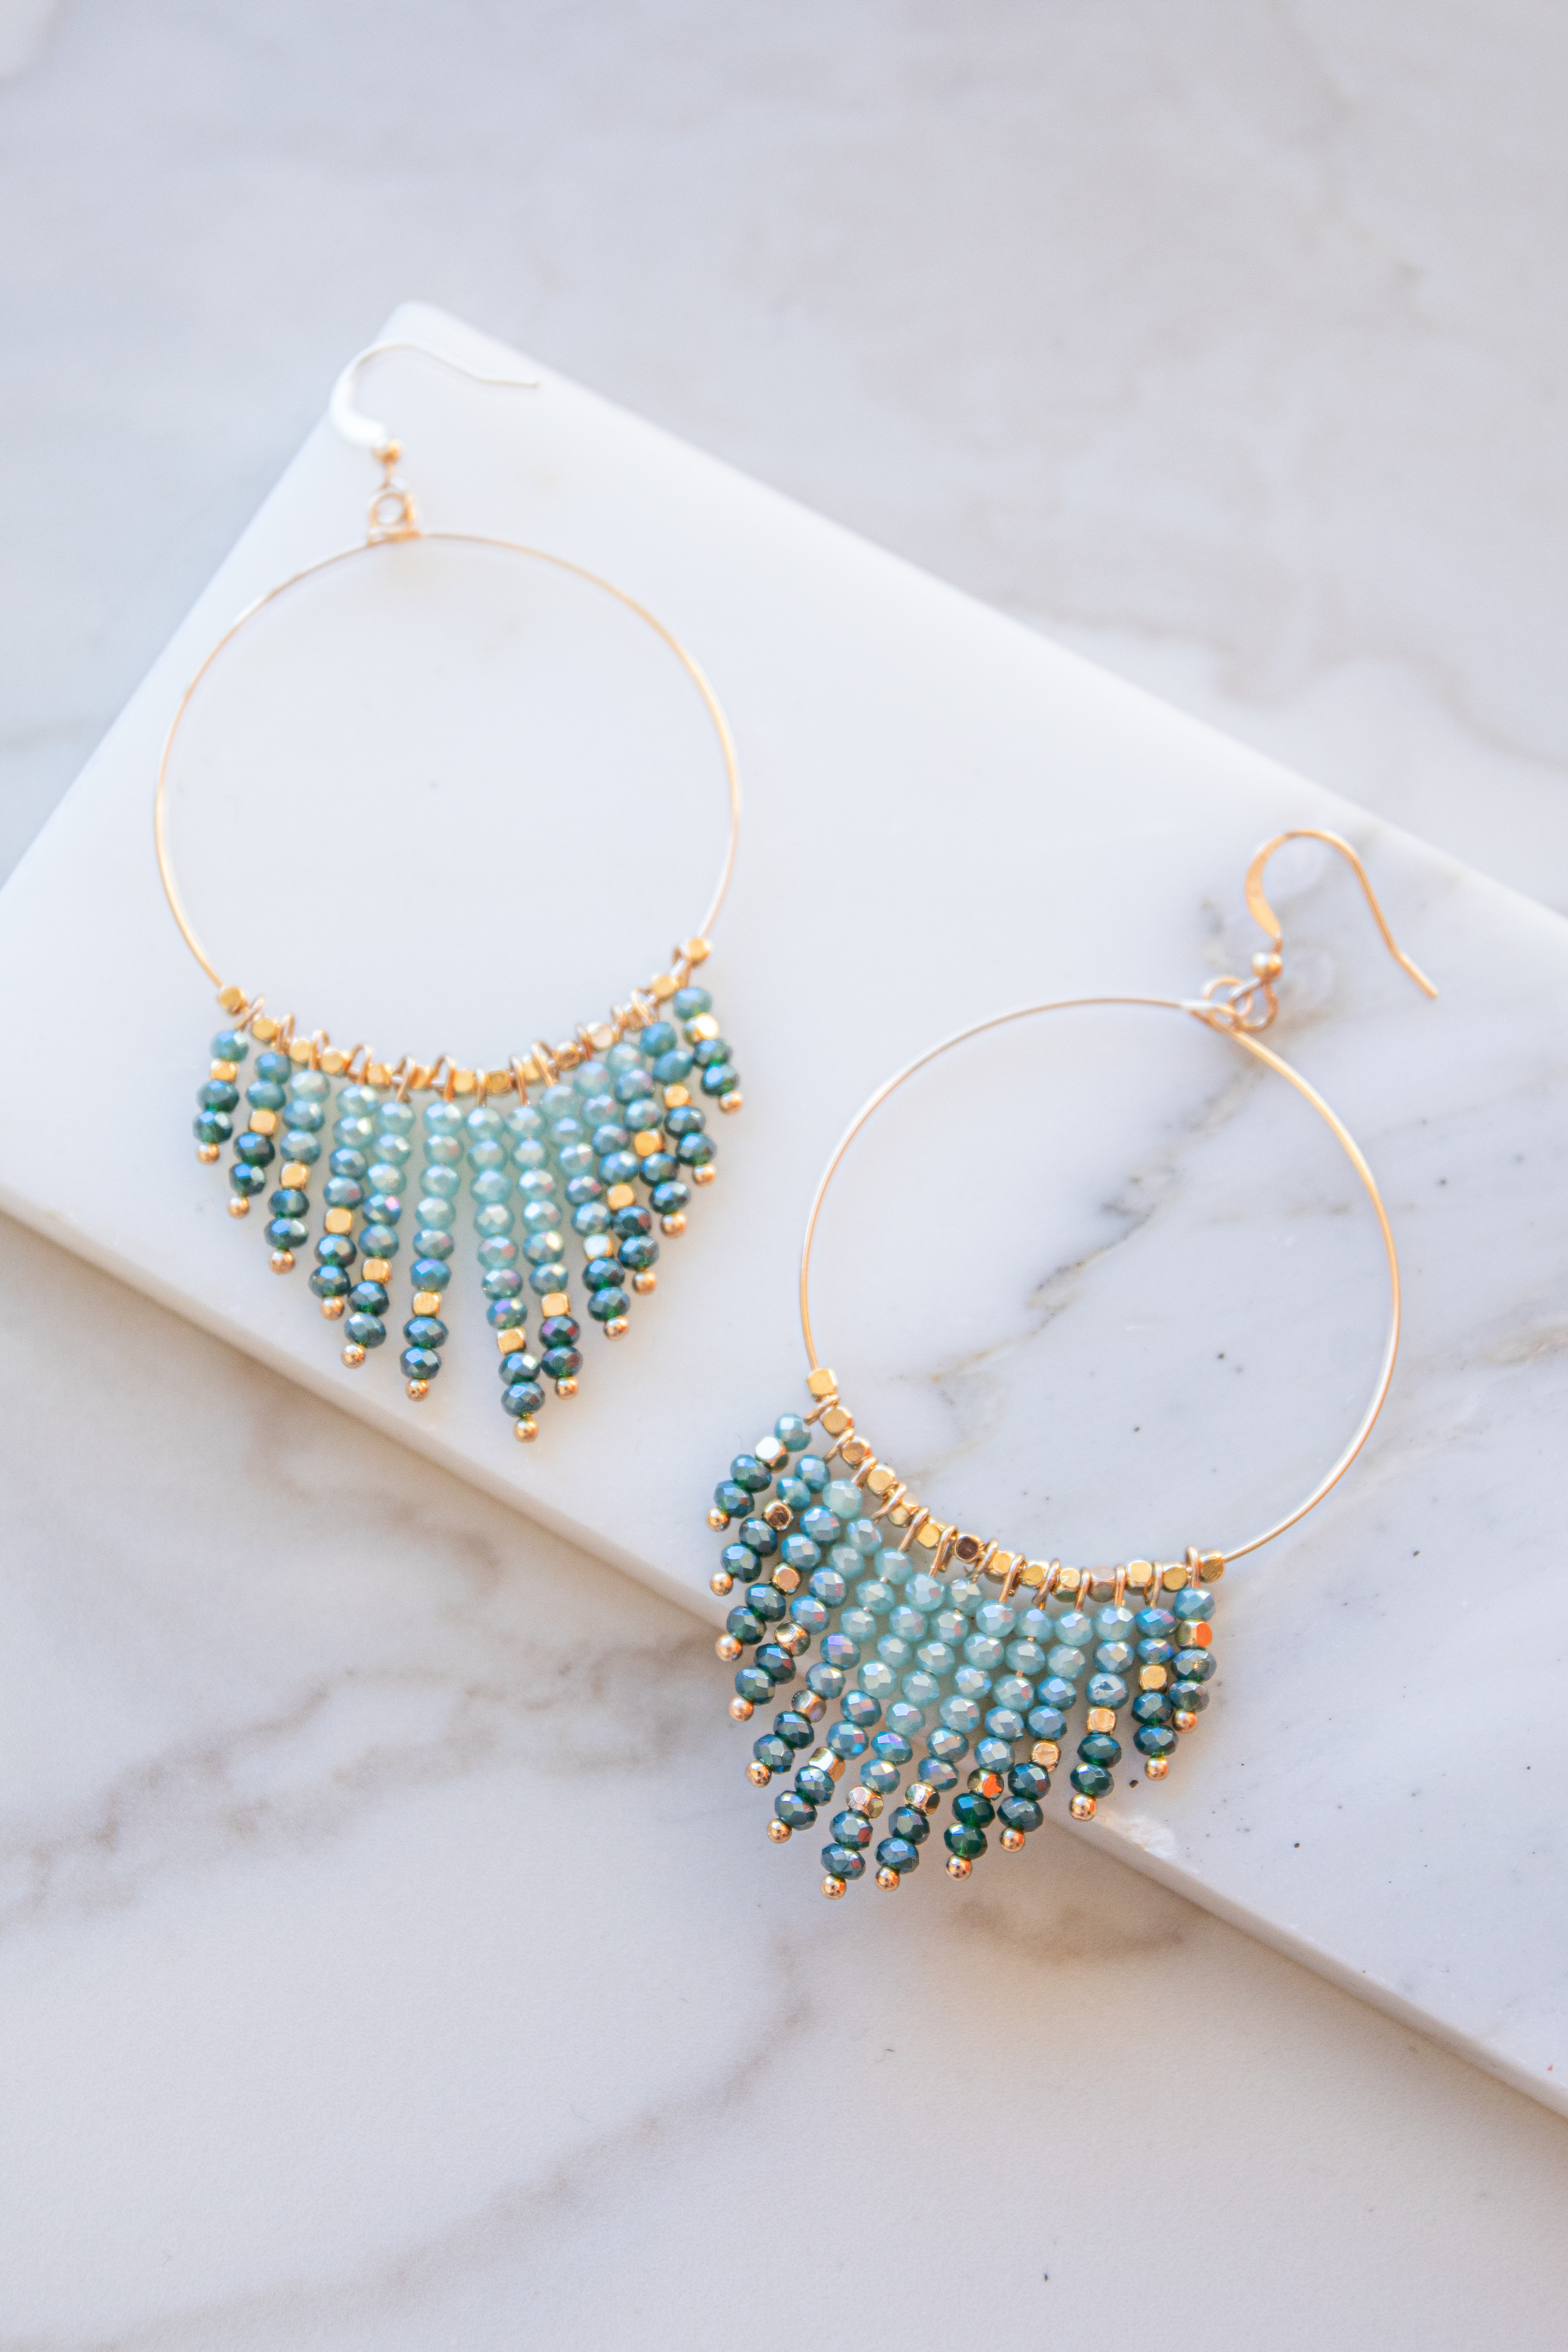 Gold Hoop Earrings with Teal and Pine Bead Dangles